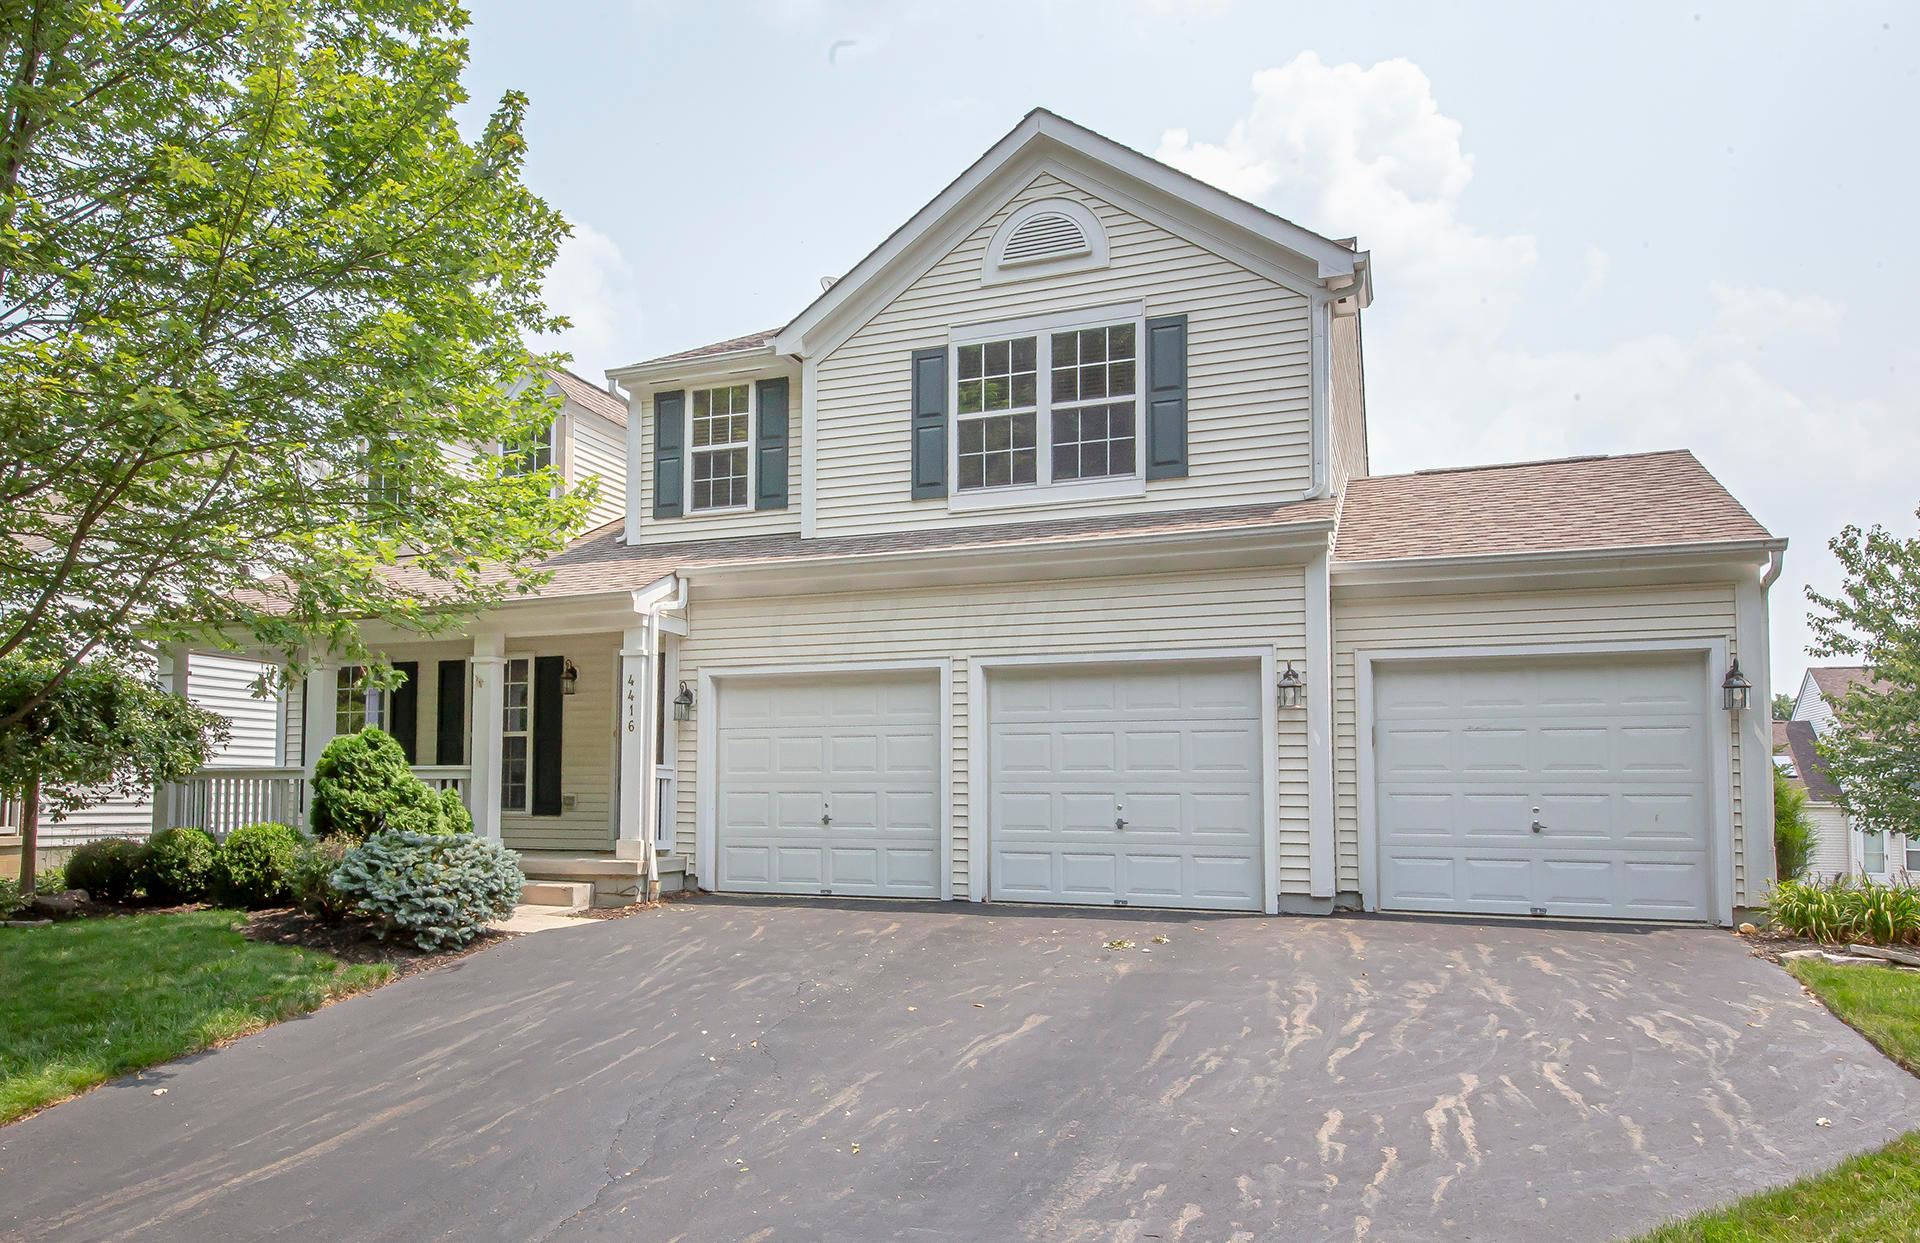 Photo of 4416 Wrens Nest Drive, New Albany, OH 43054 (MLS # 221027467)